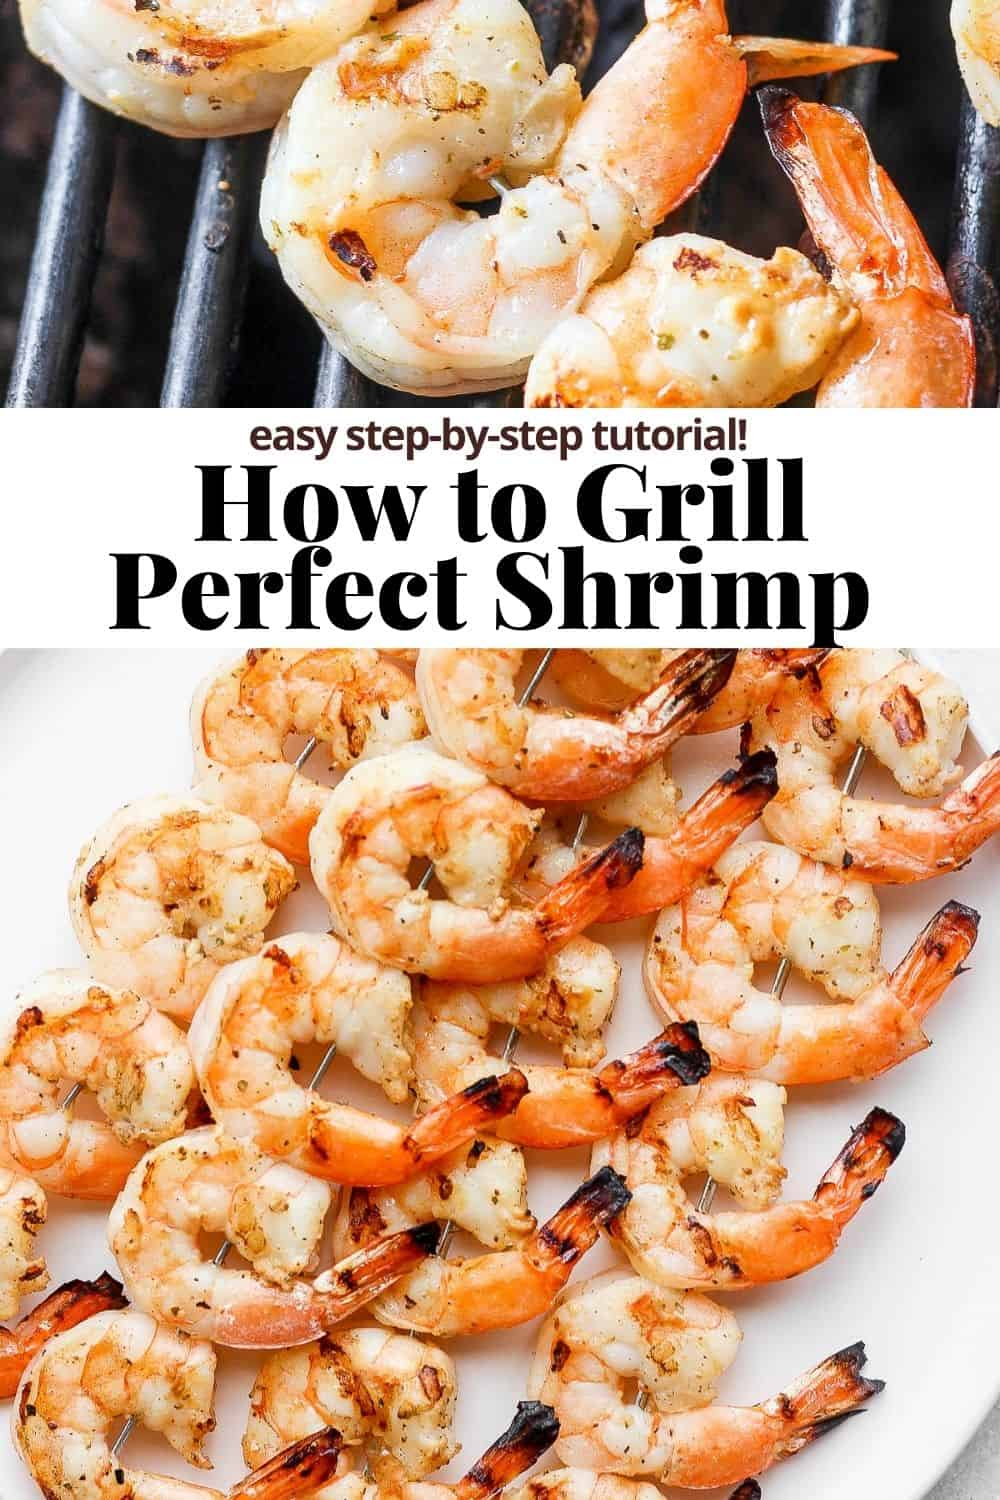 Pinterest image for how to grill shrimp.